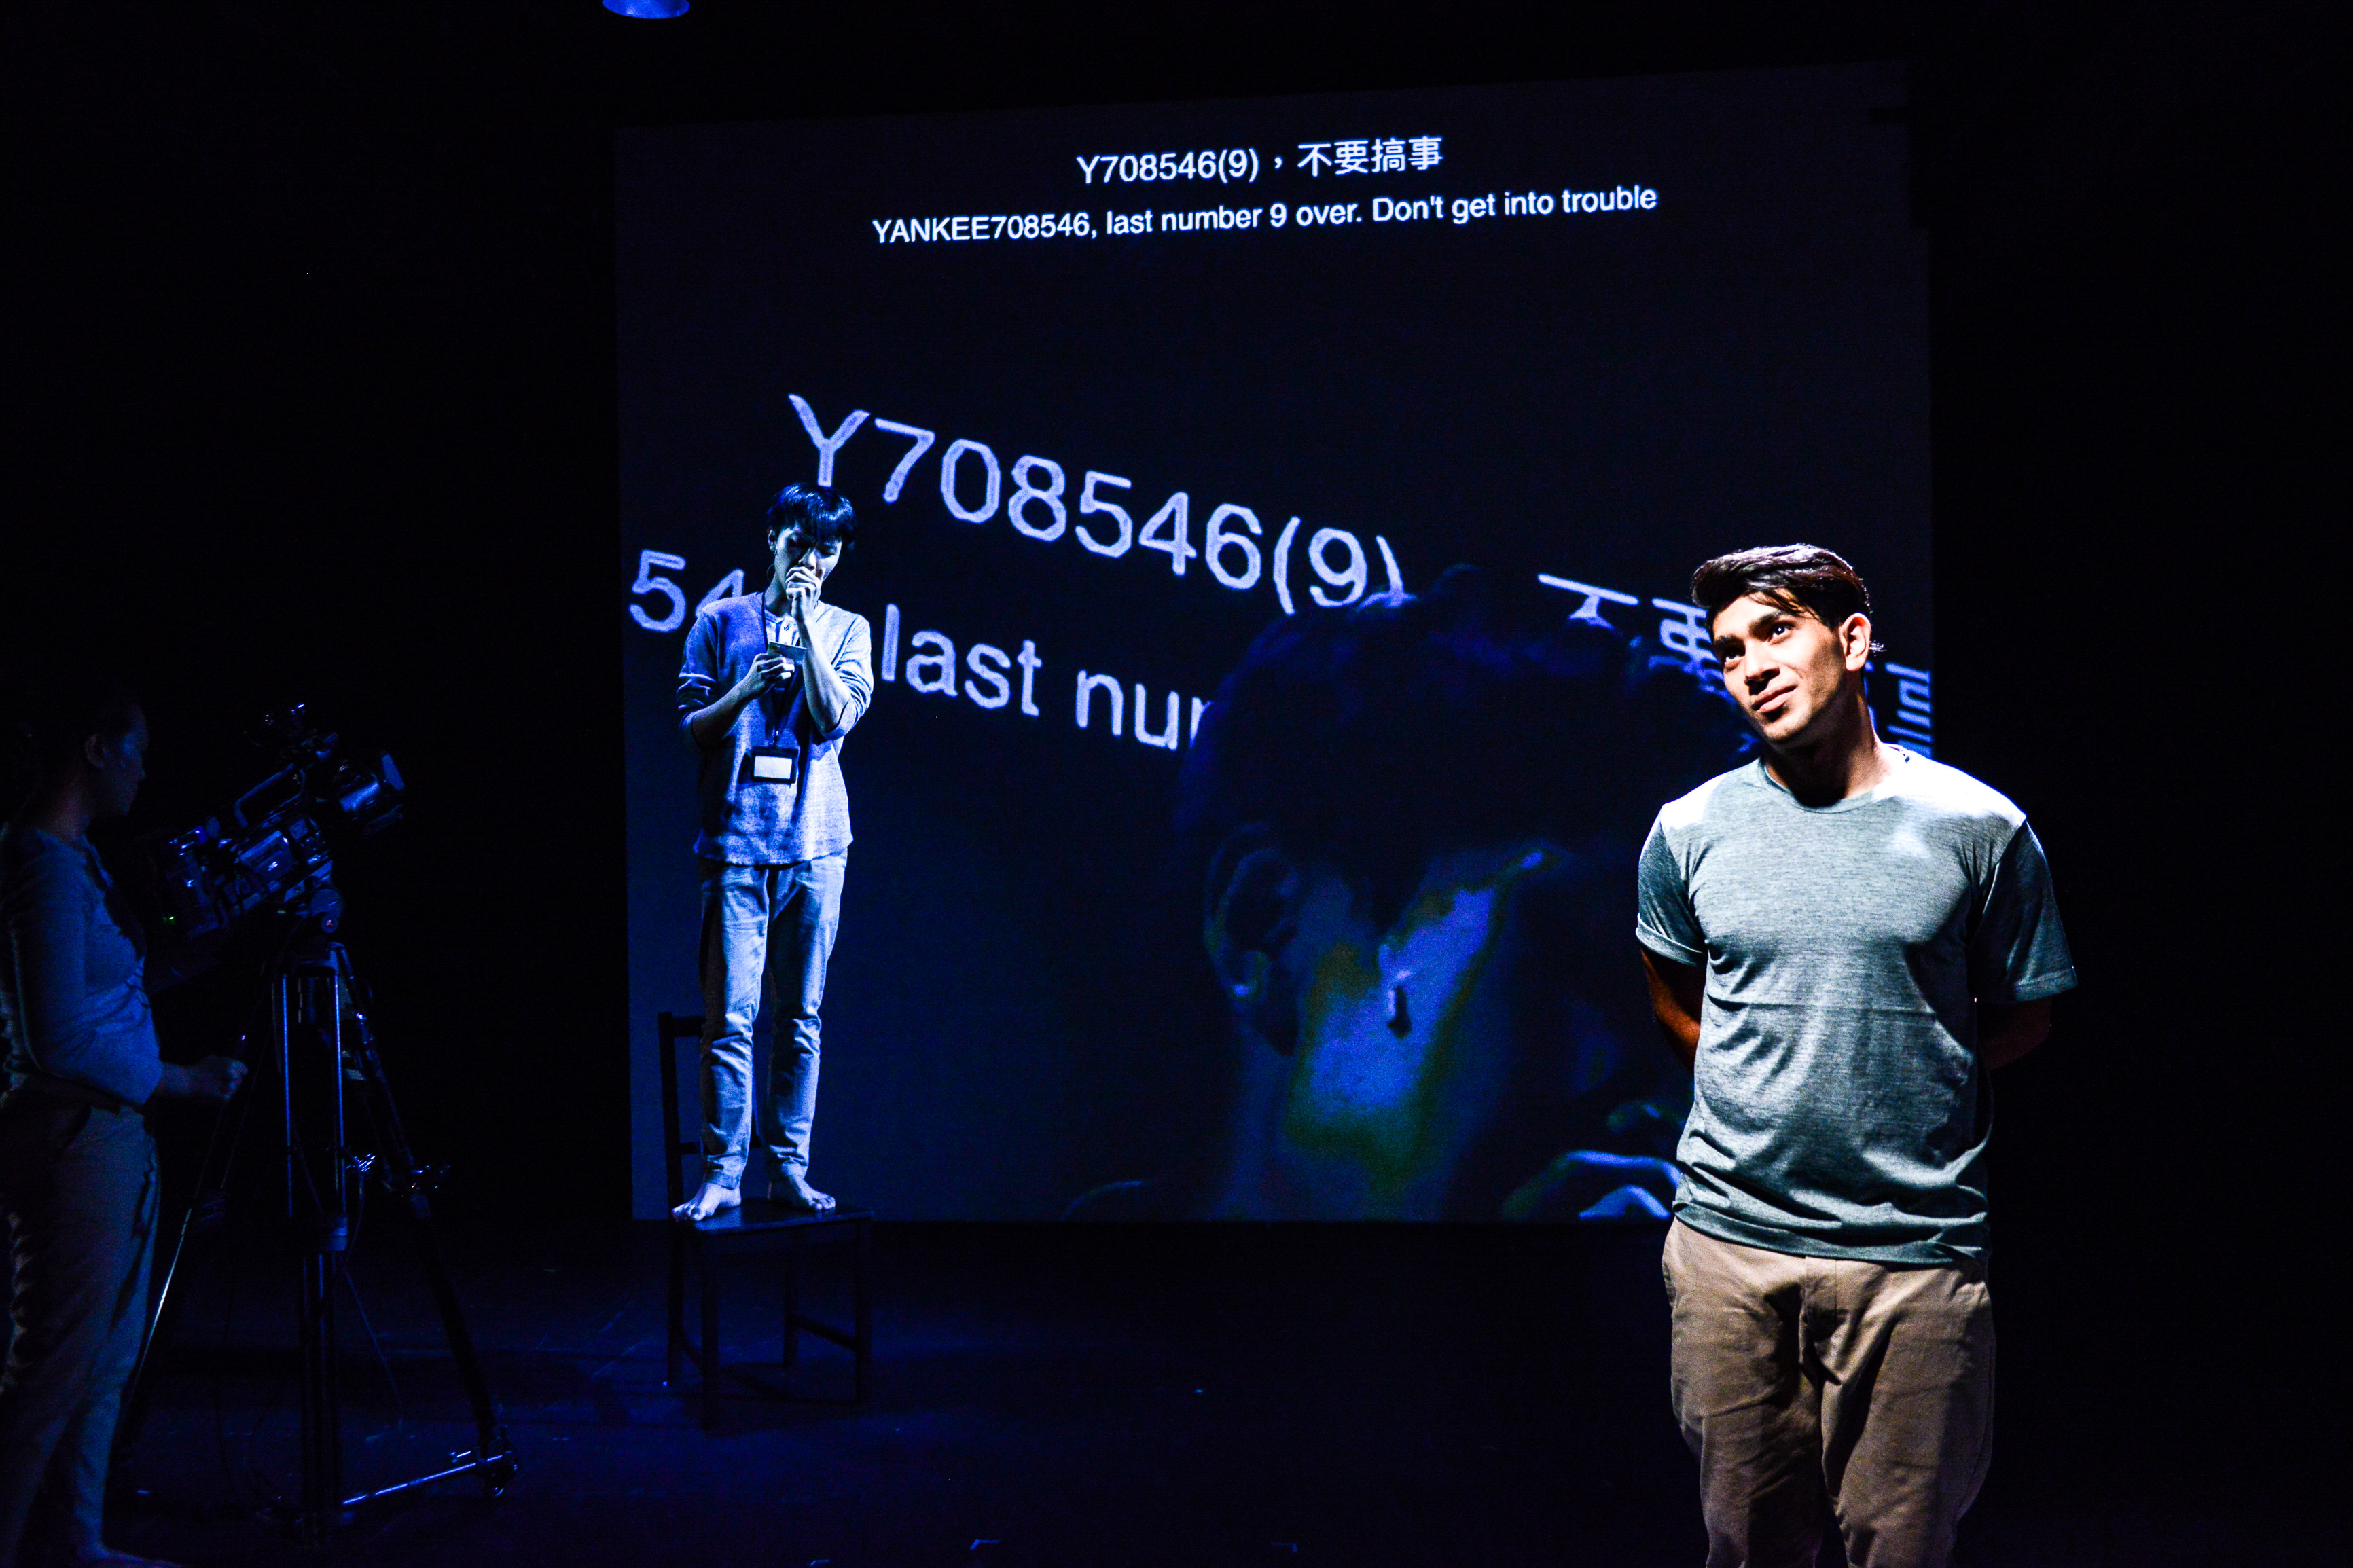 Anyway, that was the only funny experience I had with the police | Featuring: Mohammad Kashif Ali, Ng King Lung | Tagged as: Show, Testimony | Photo: Fung Wai Sun |  (Rooftop Productions • Hong Kong Theatre Company)